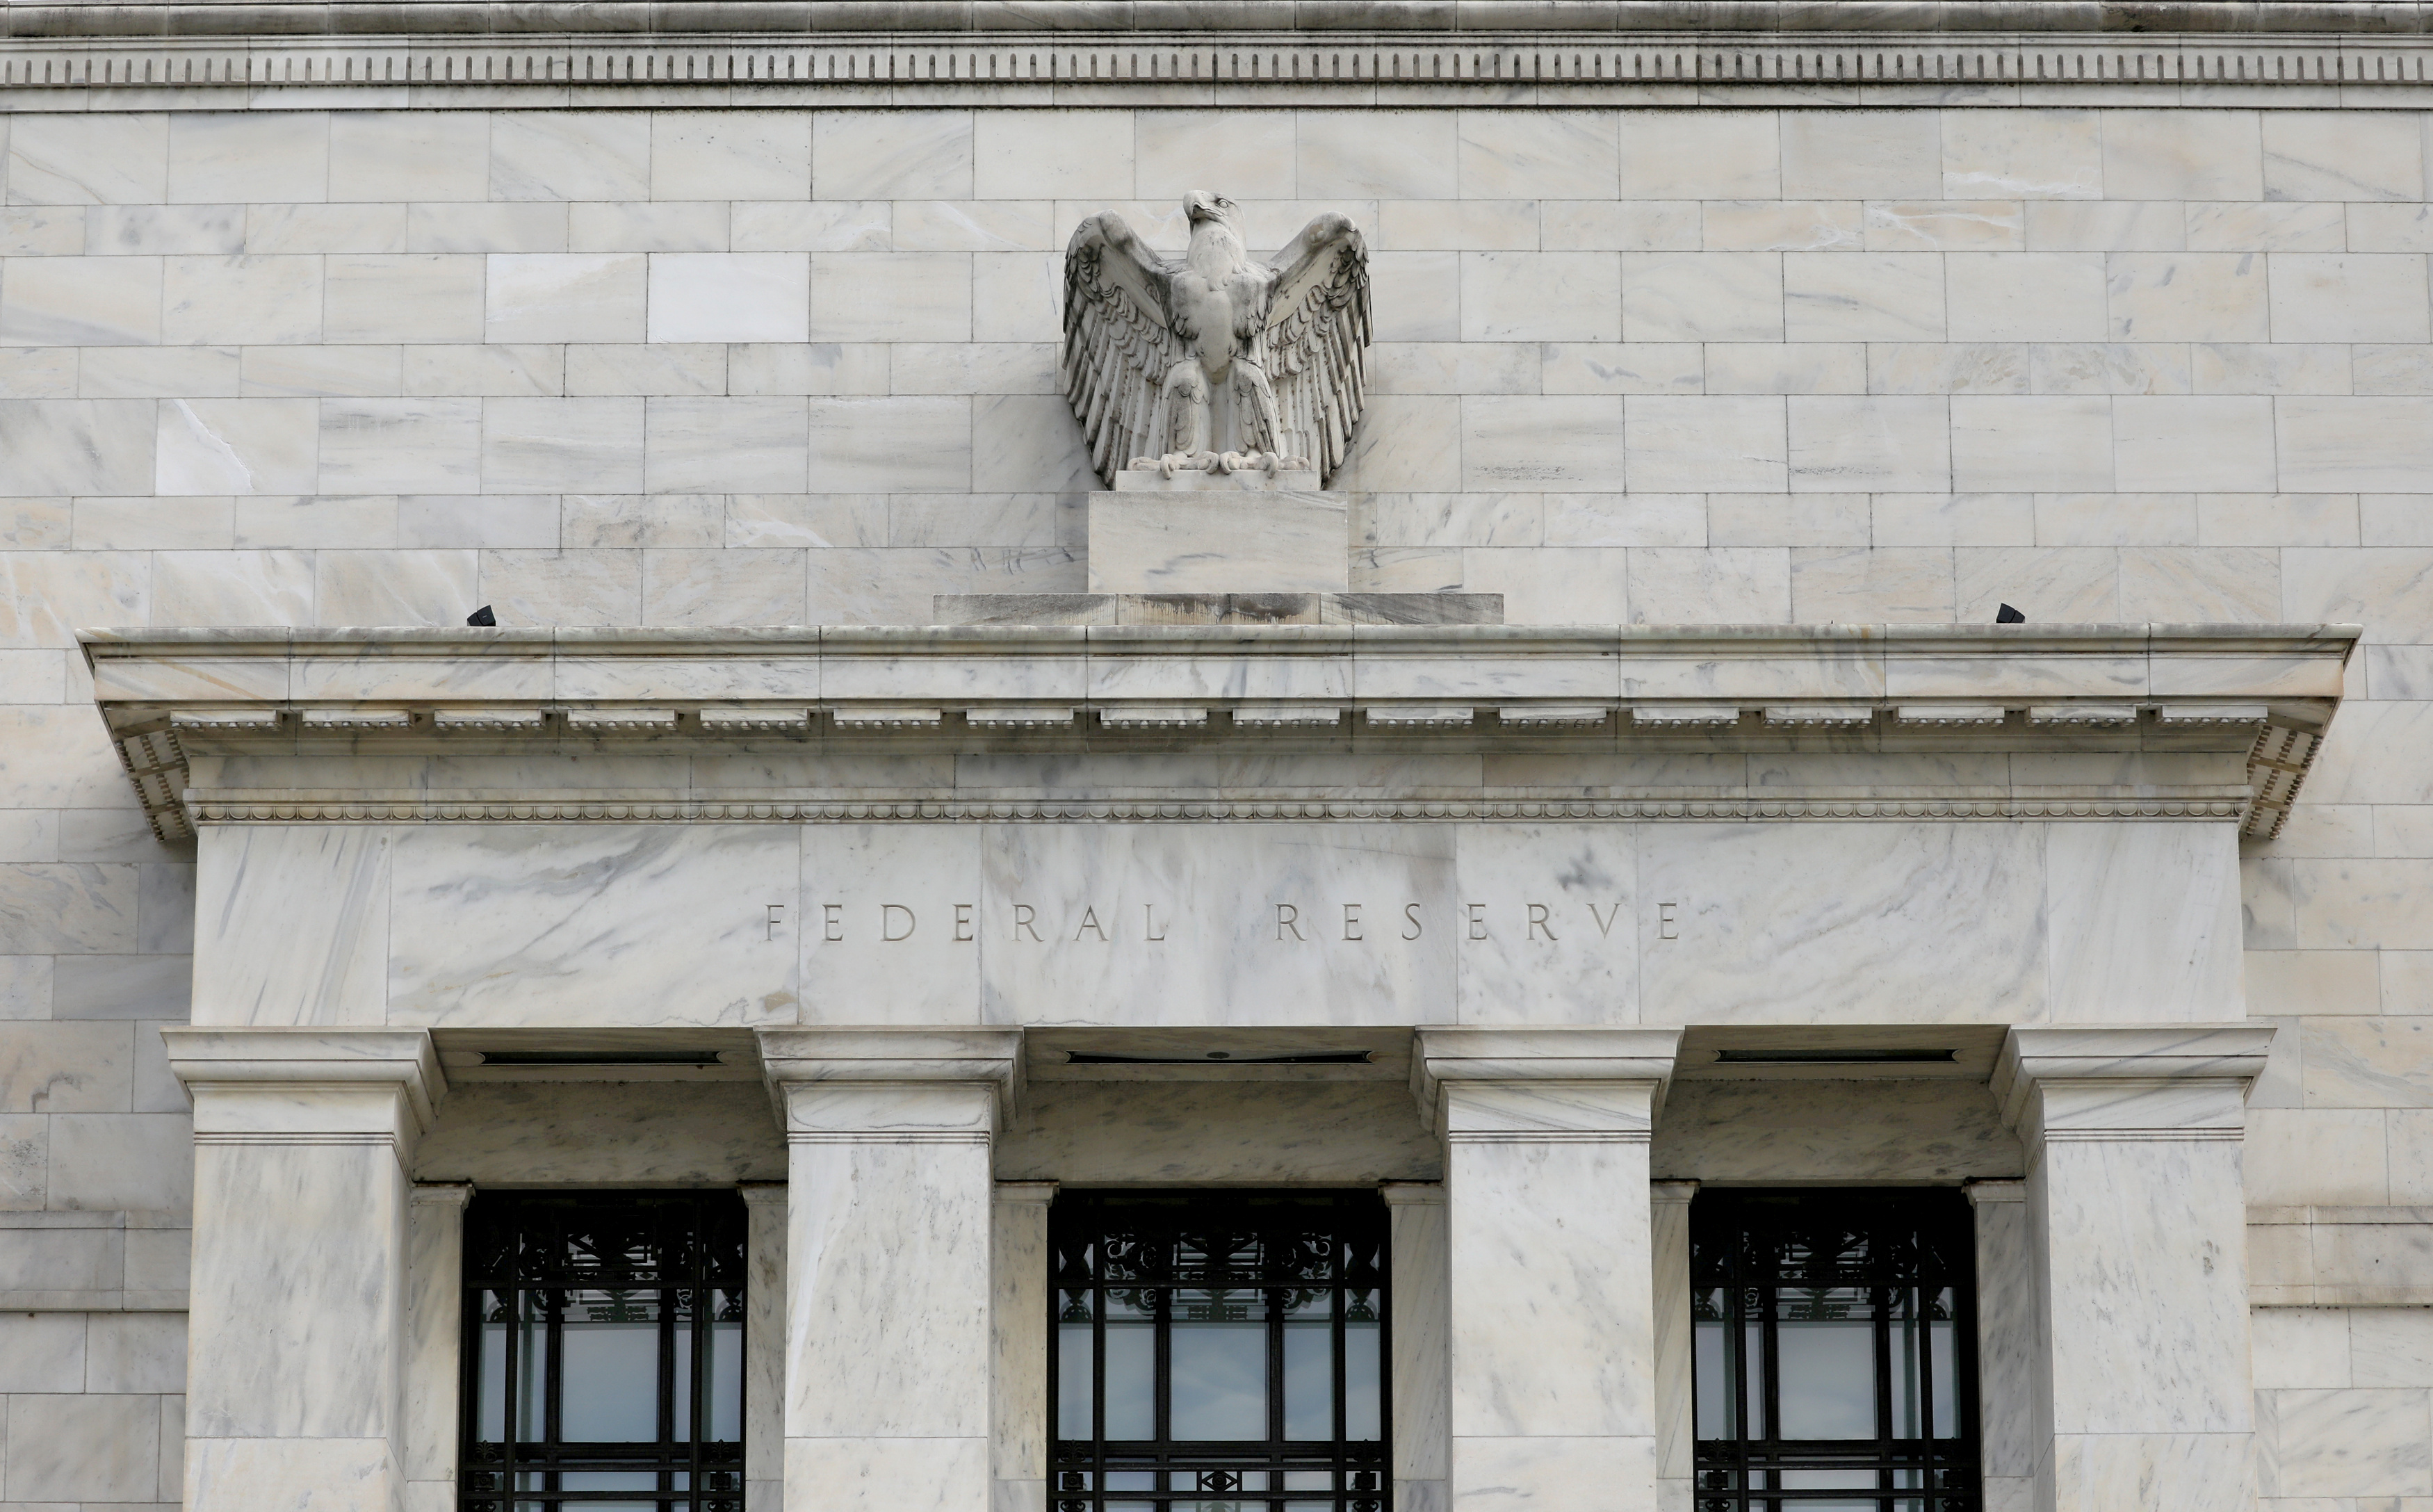 The Federal Reserve building is pictured in Washington, DC, U.S., August 22, 2018. REUTERS/Chris Wattie/File Photo